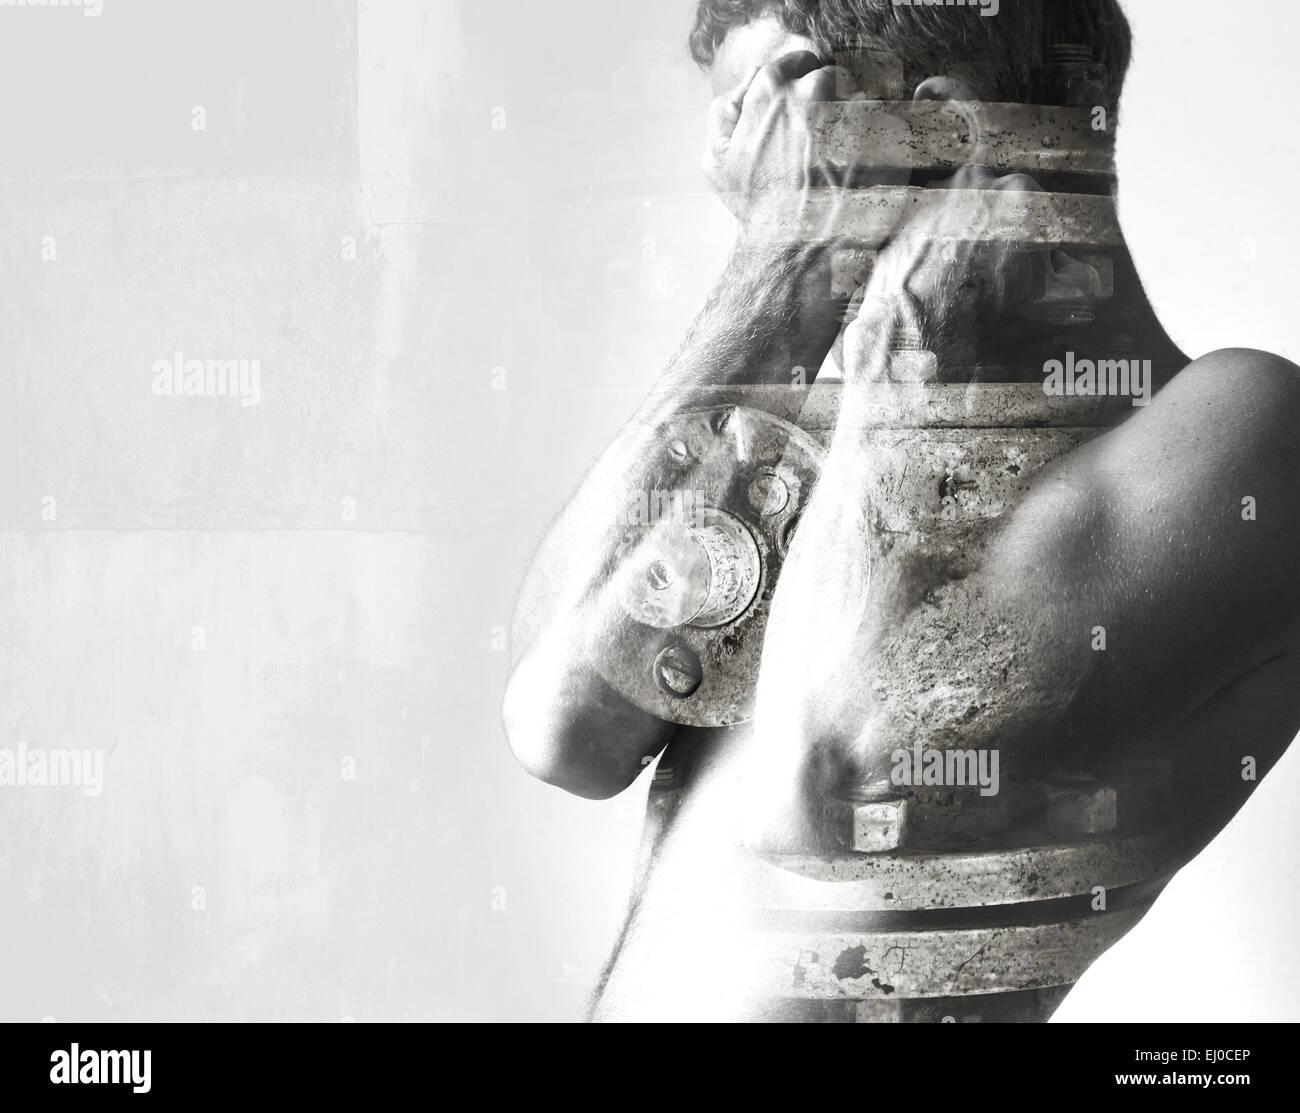 Double exposure abstract conceptual photo collage, man hides behind his strong blocking hands and industrial details - Stock Image